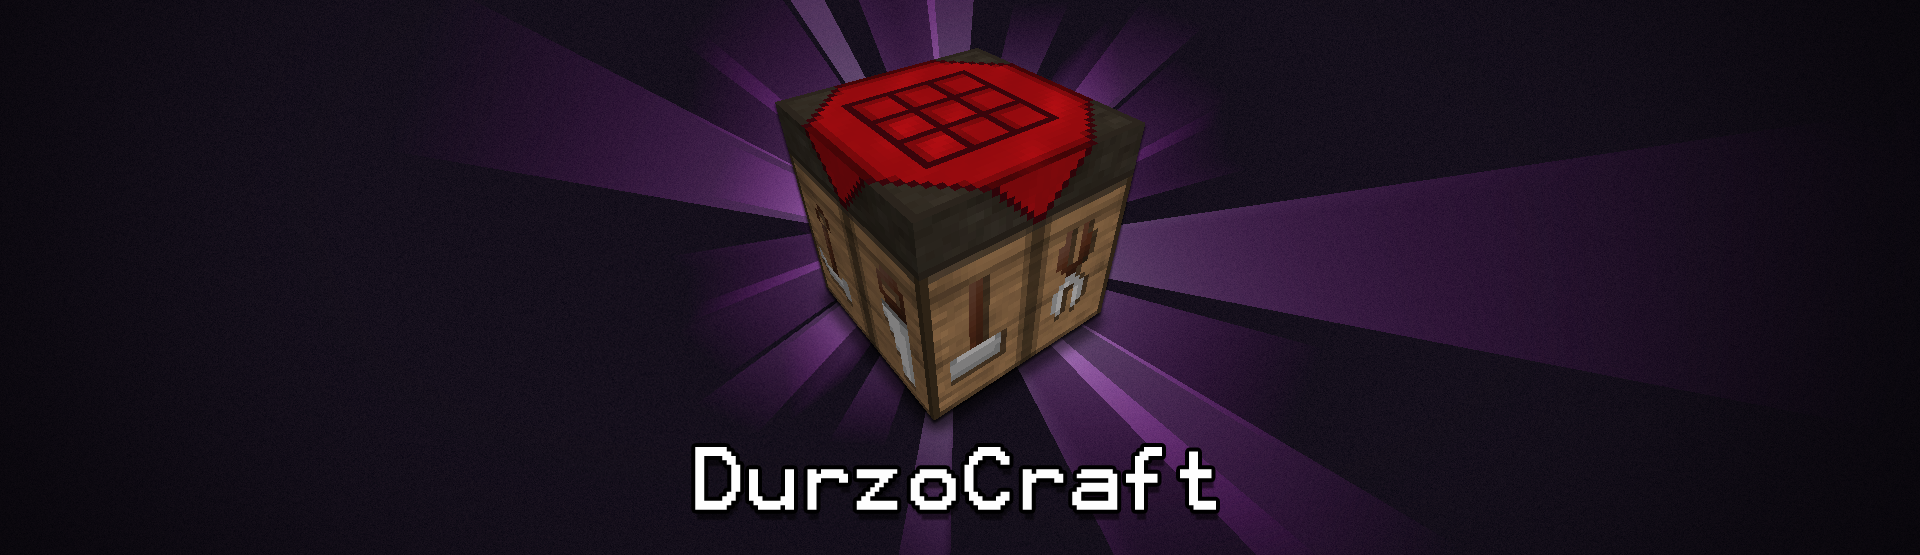 98d67  Durzocraft resource pack [1.9.4/1.8.9] [32x] DurzoCraft Texture Pack Download